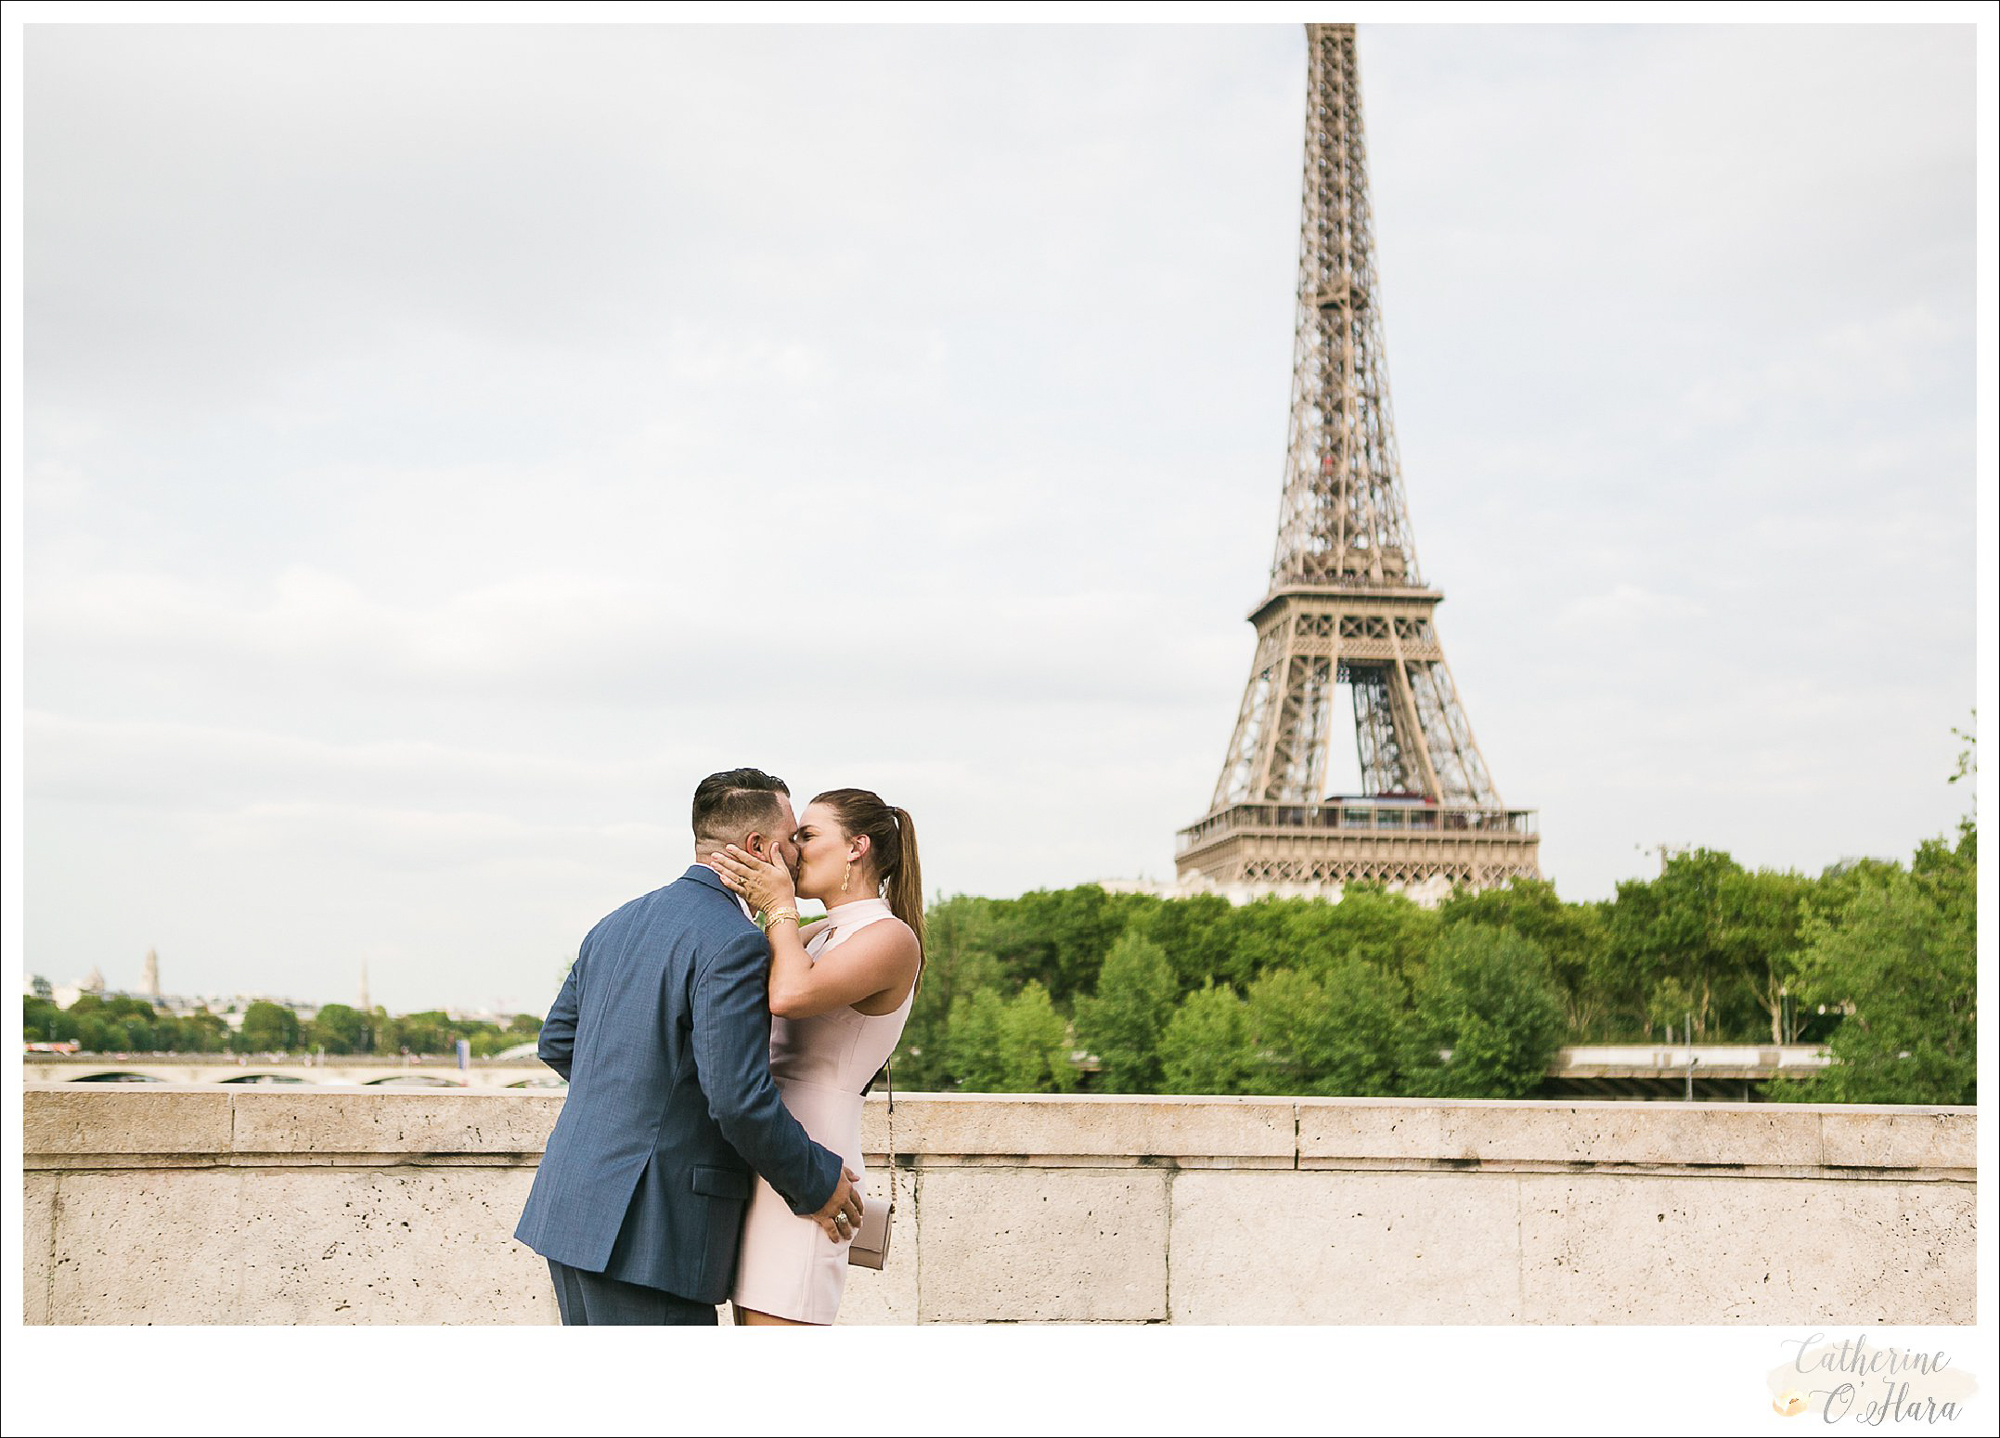 surprise proposal engagement photographer paris france-22.jpg